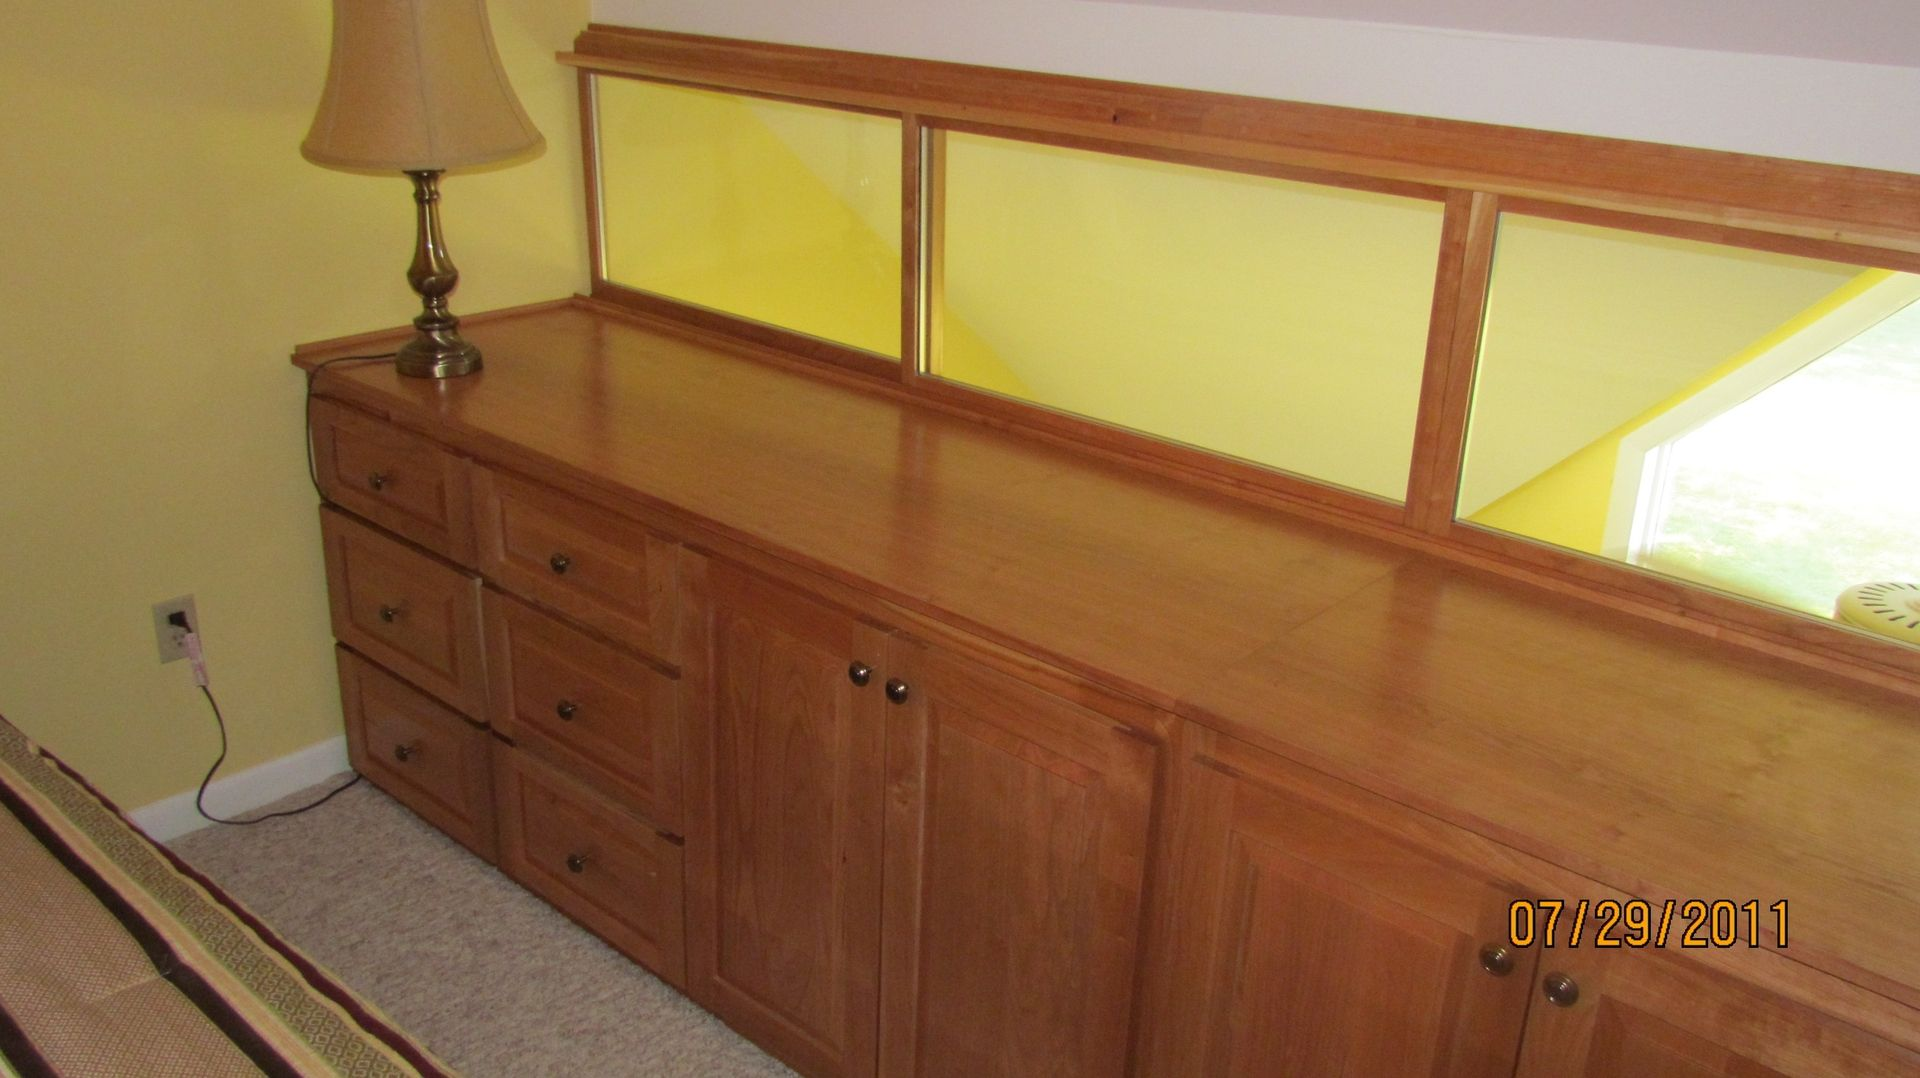 Hand Crafted Solid Cherry Built In His And Hers Dresser With Sliding  Windows by Five Points Custom Woodworking   CustomMade com. Hand Crafted Solid Cherry Built In His And Hers Dresser With